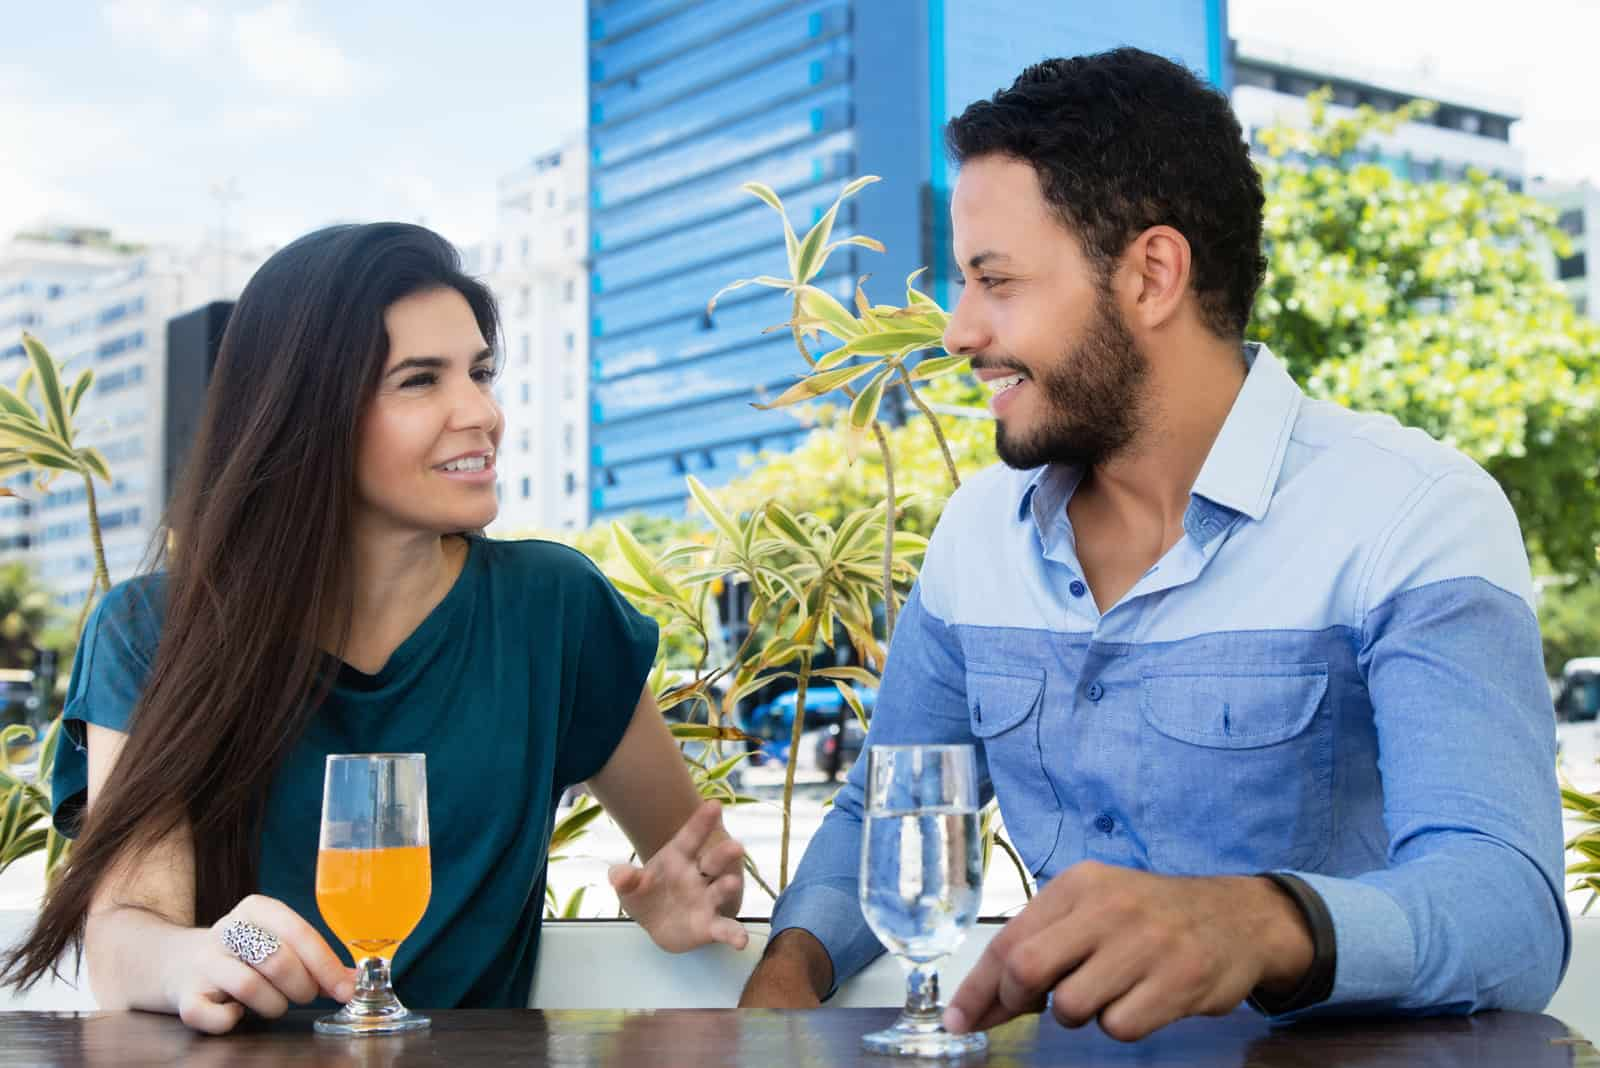 a smiling man and woman sit outdoors and talk